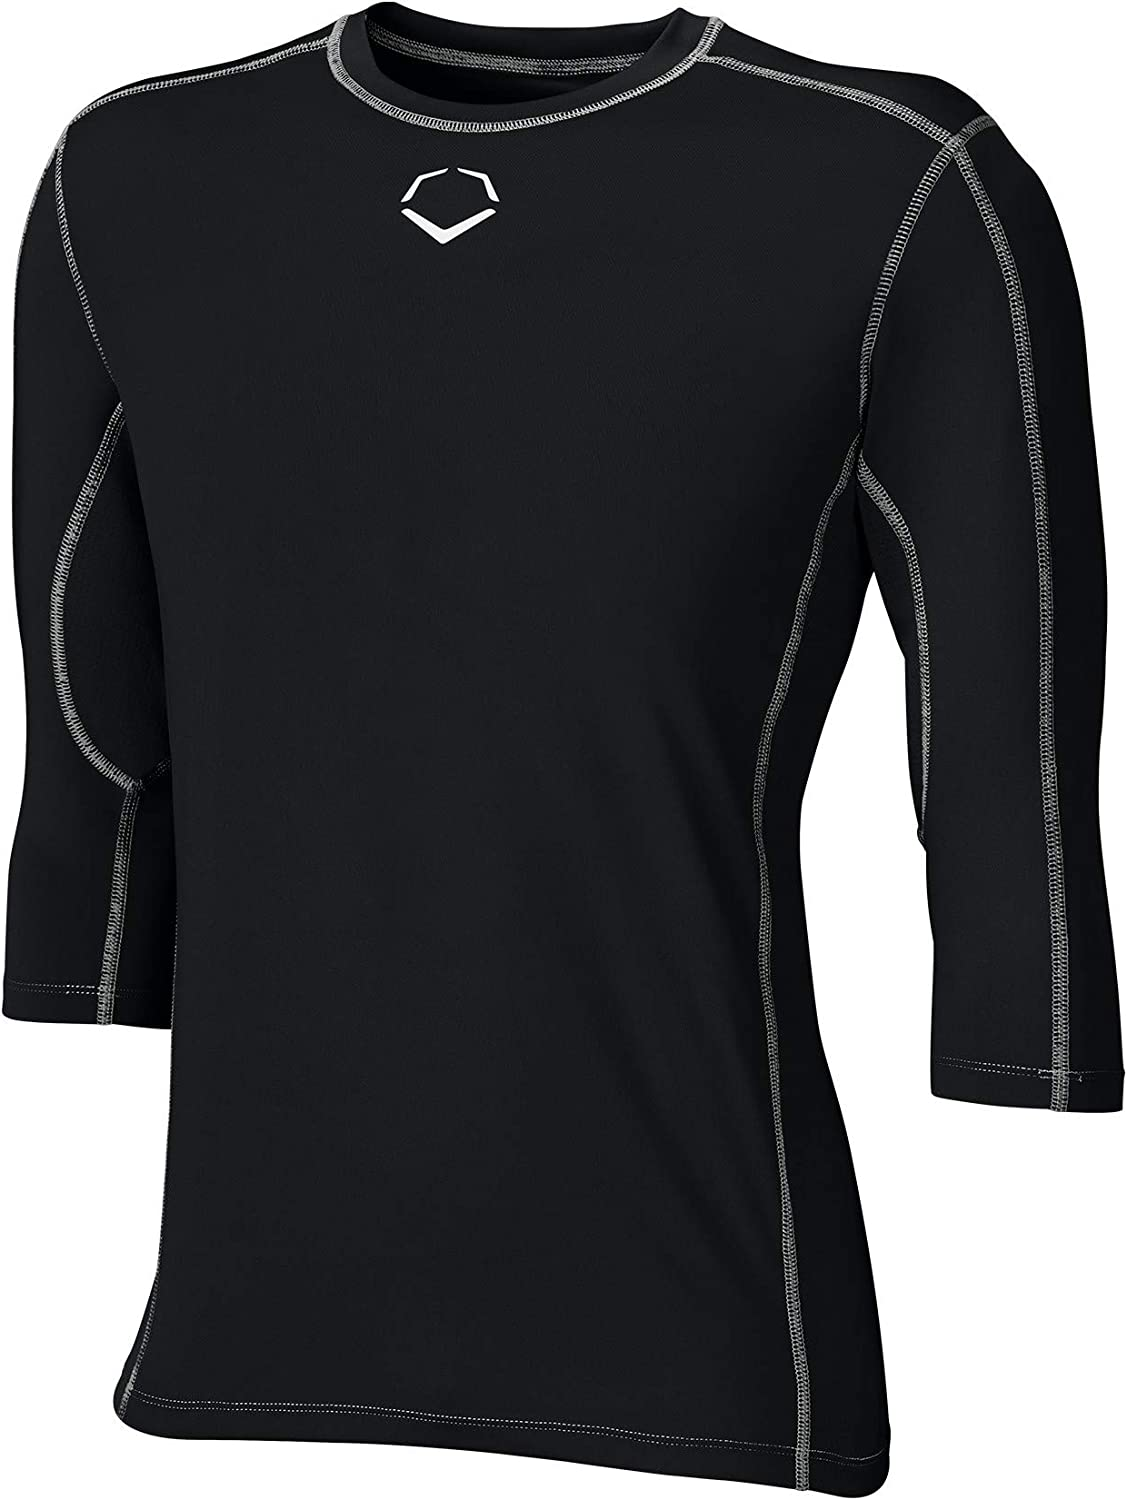 EvoShield Pro Cash special New color price Team Sleeve Mid Tee